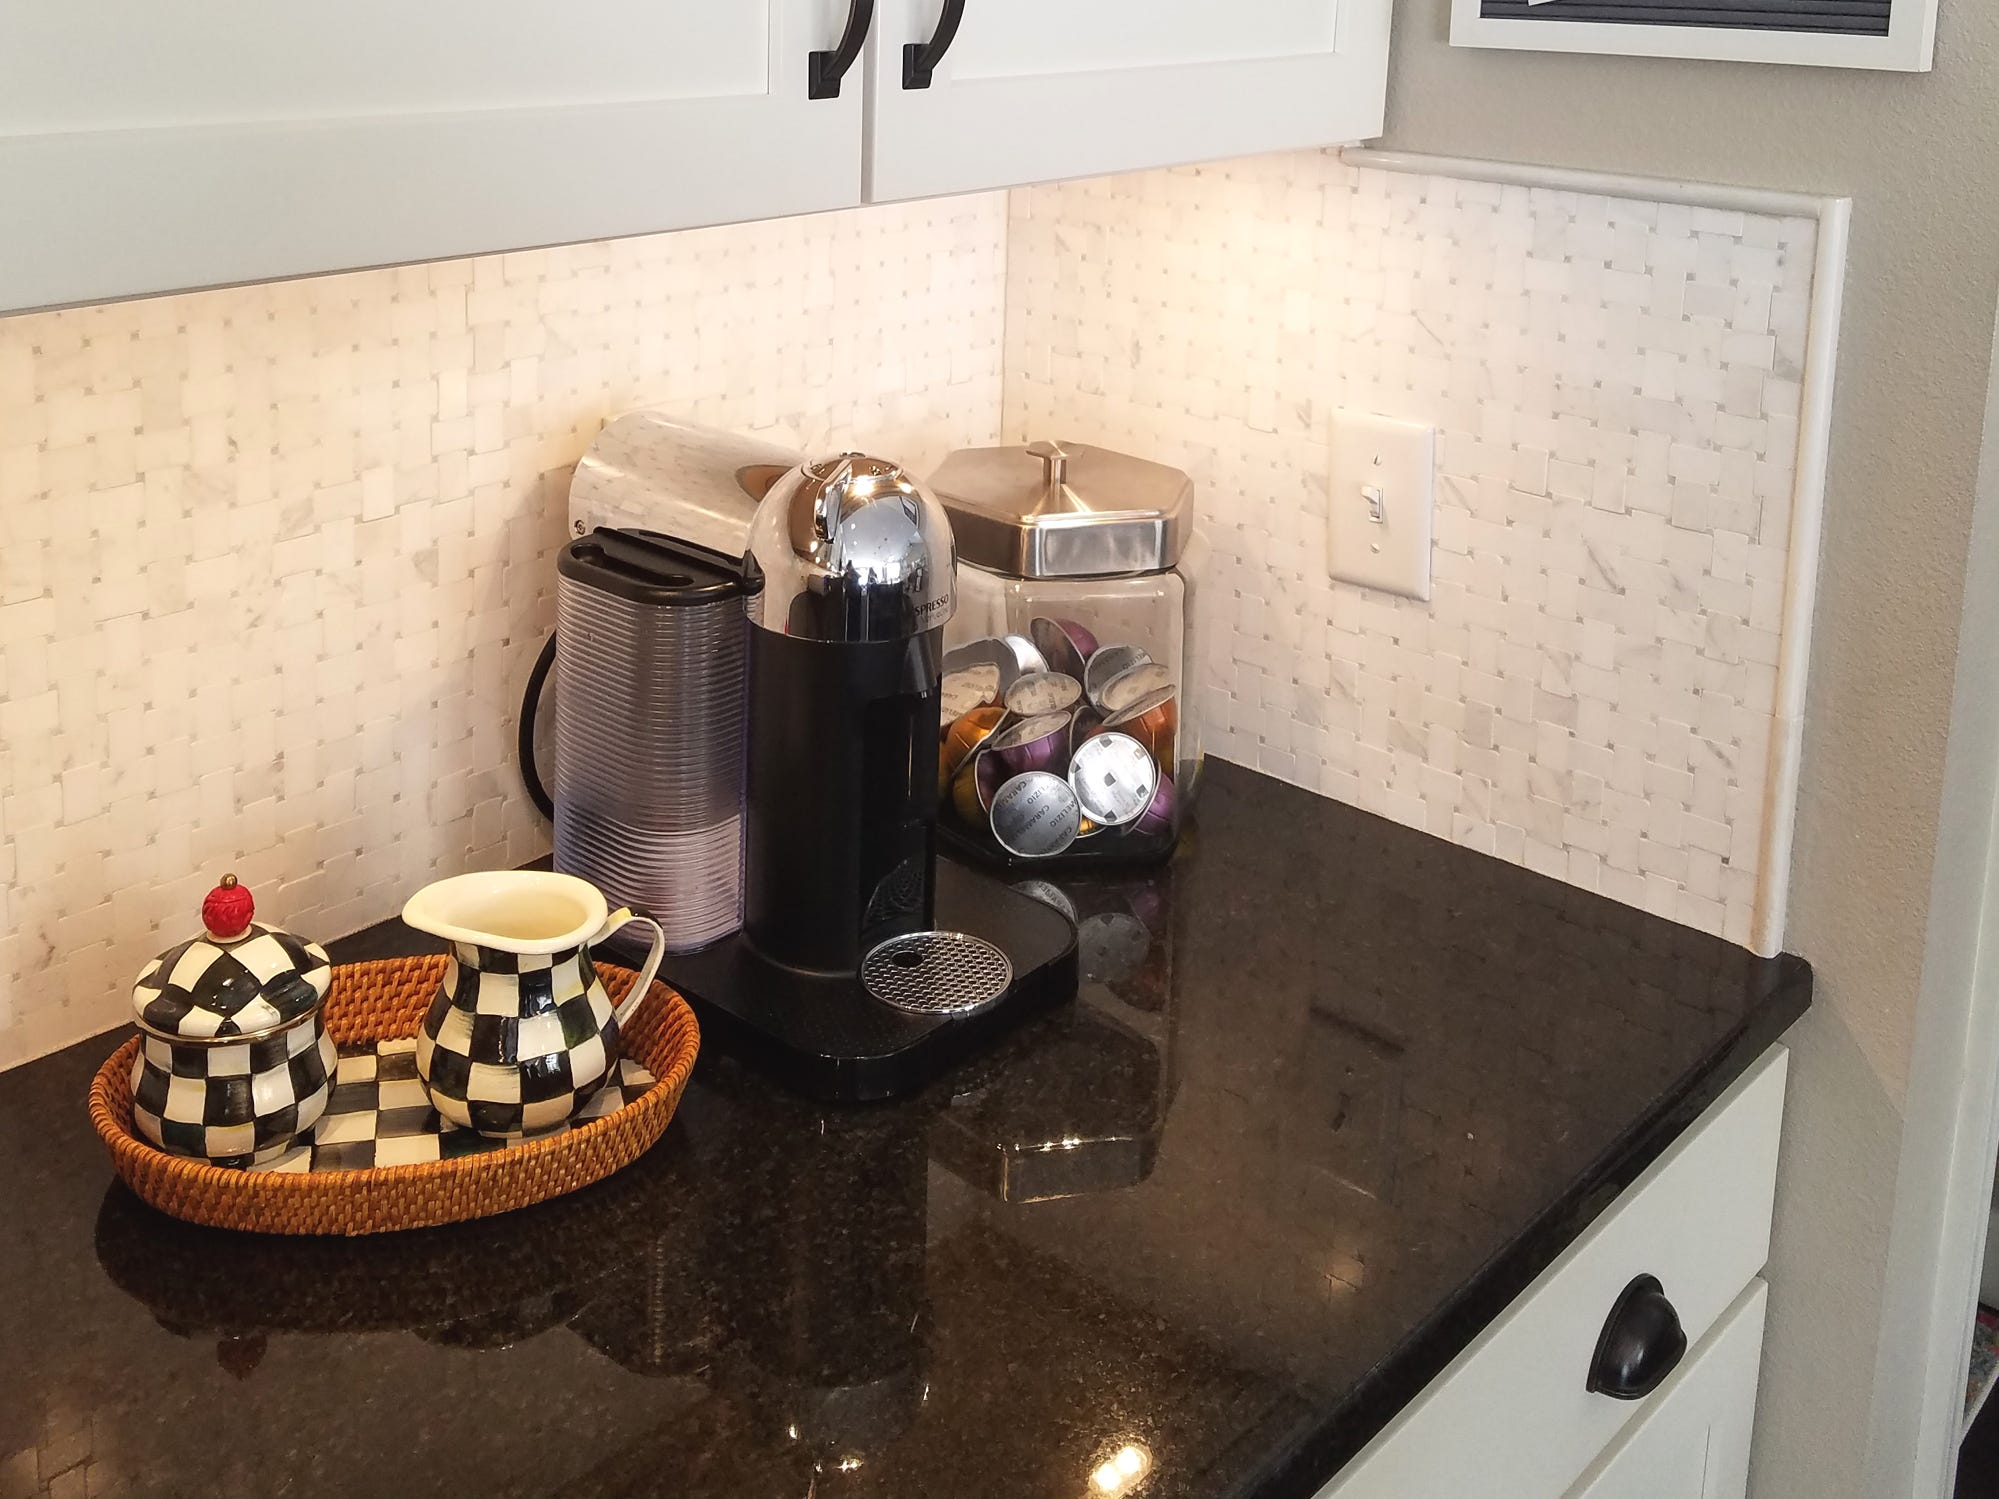 Sarah Timmer put her counter space to work for her by designating a coffee station with all of the coffee accoutrements close at hand.